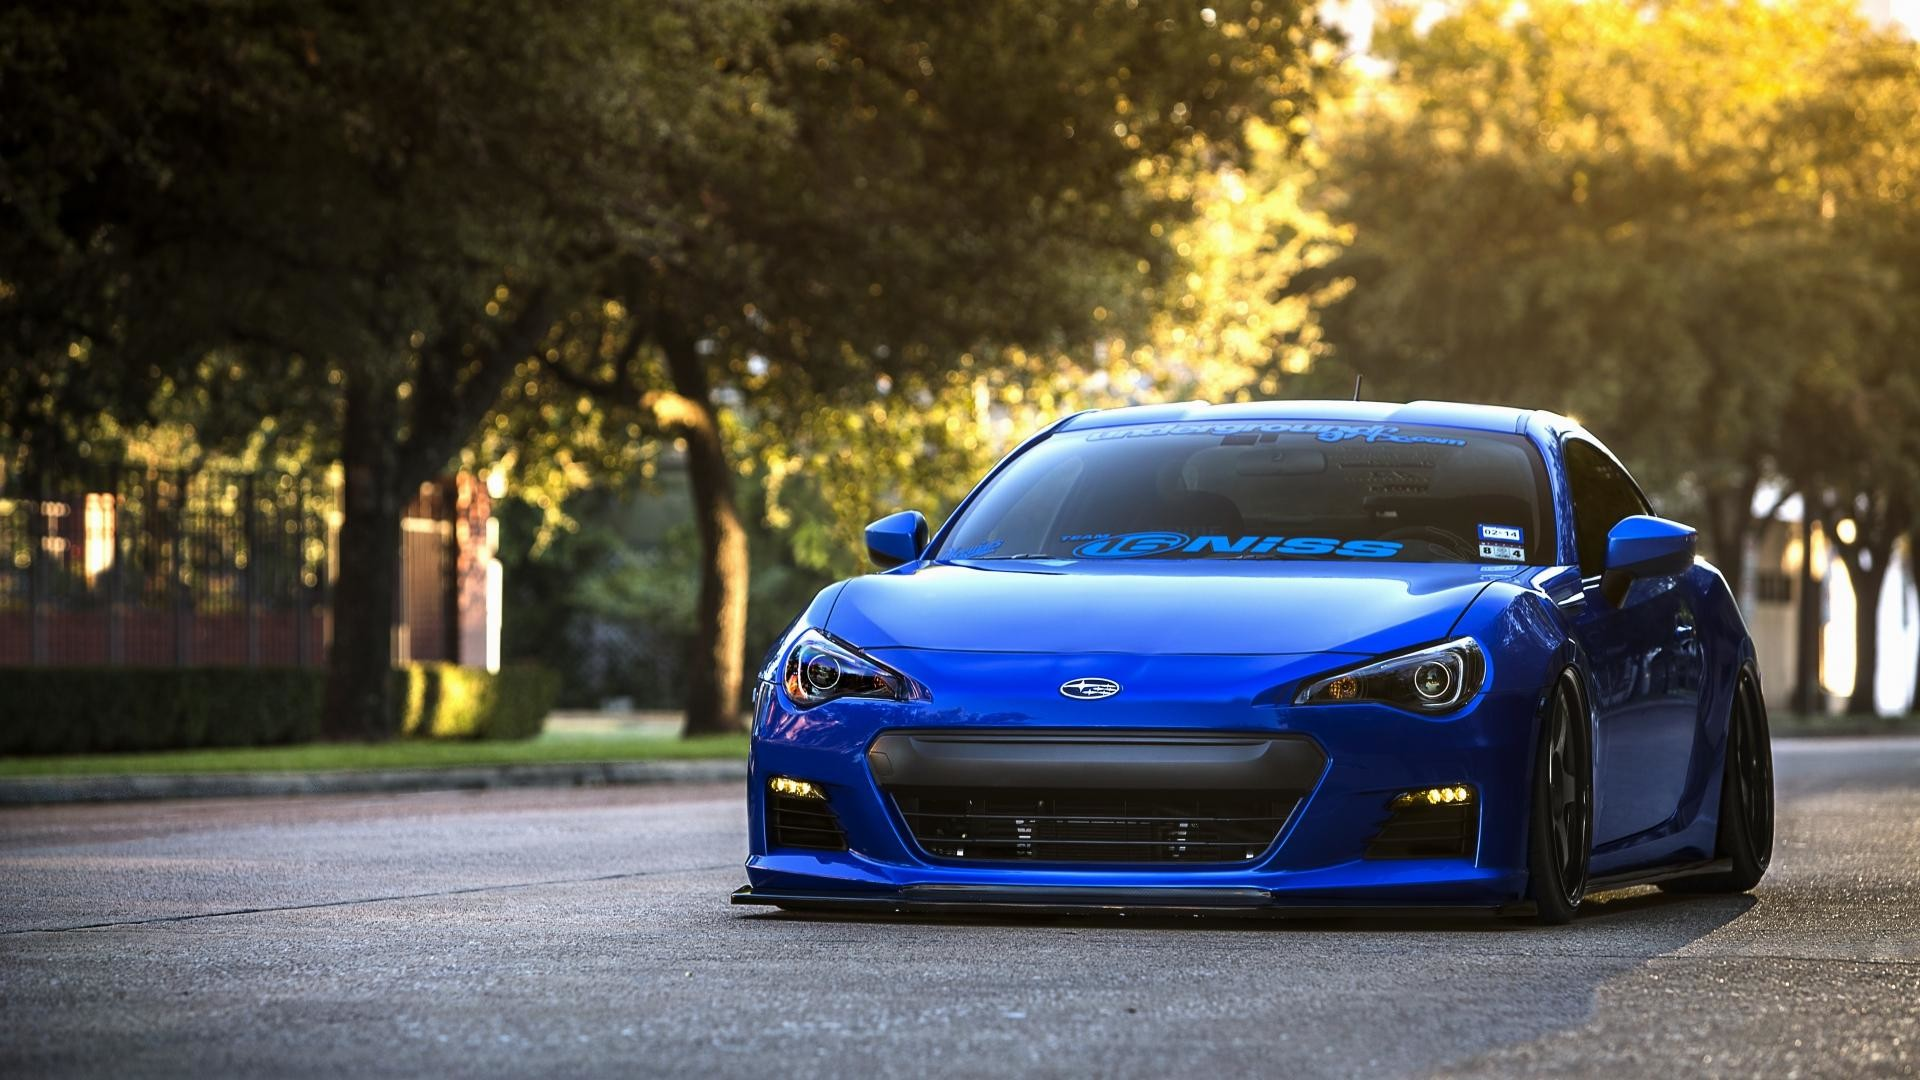 1920x1080 wallpaper.wiki-Subaru-brz-sports-car-coupe-PIC-